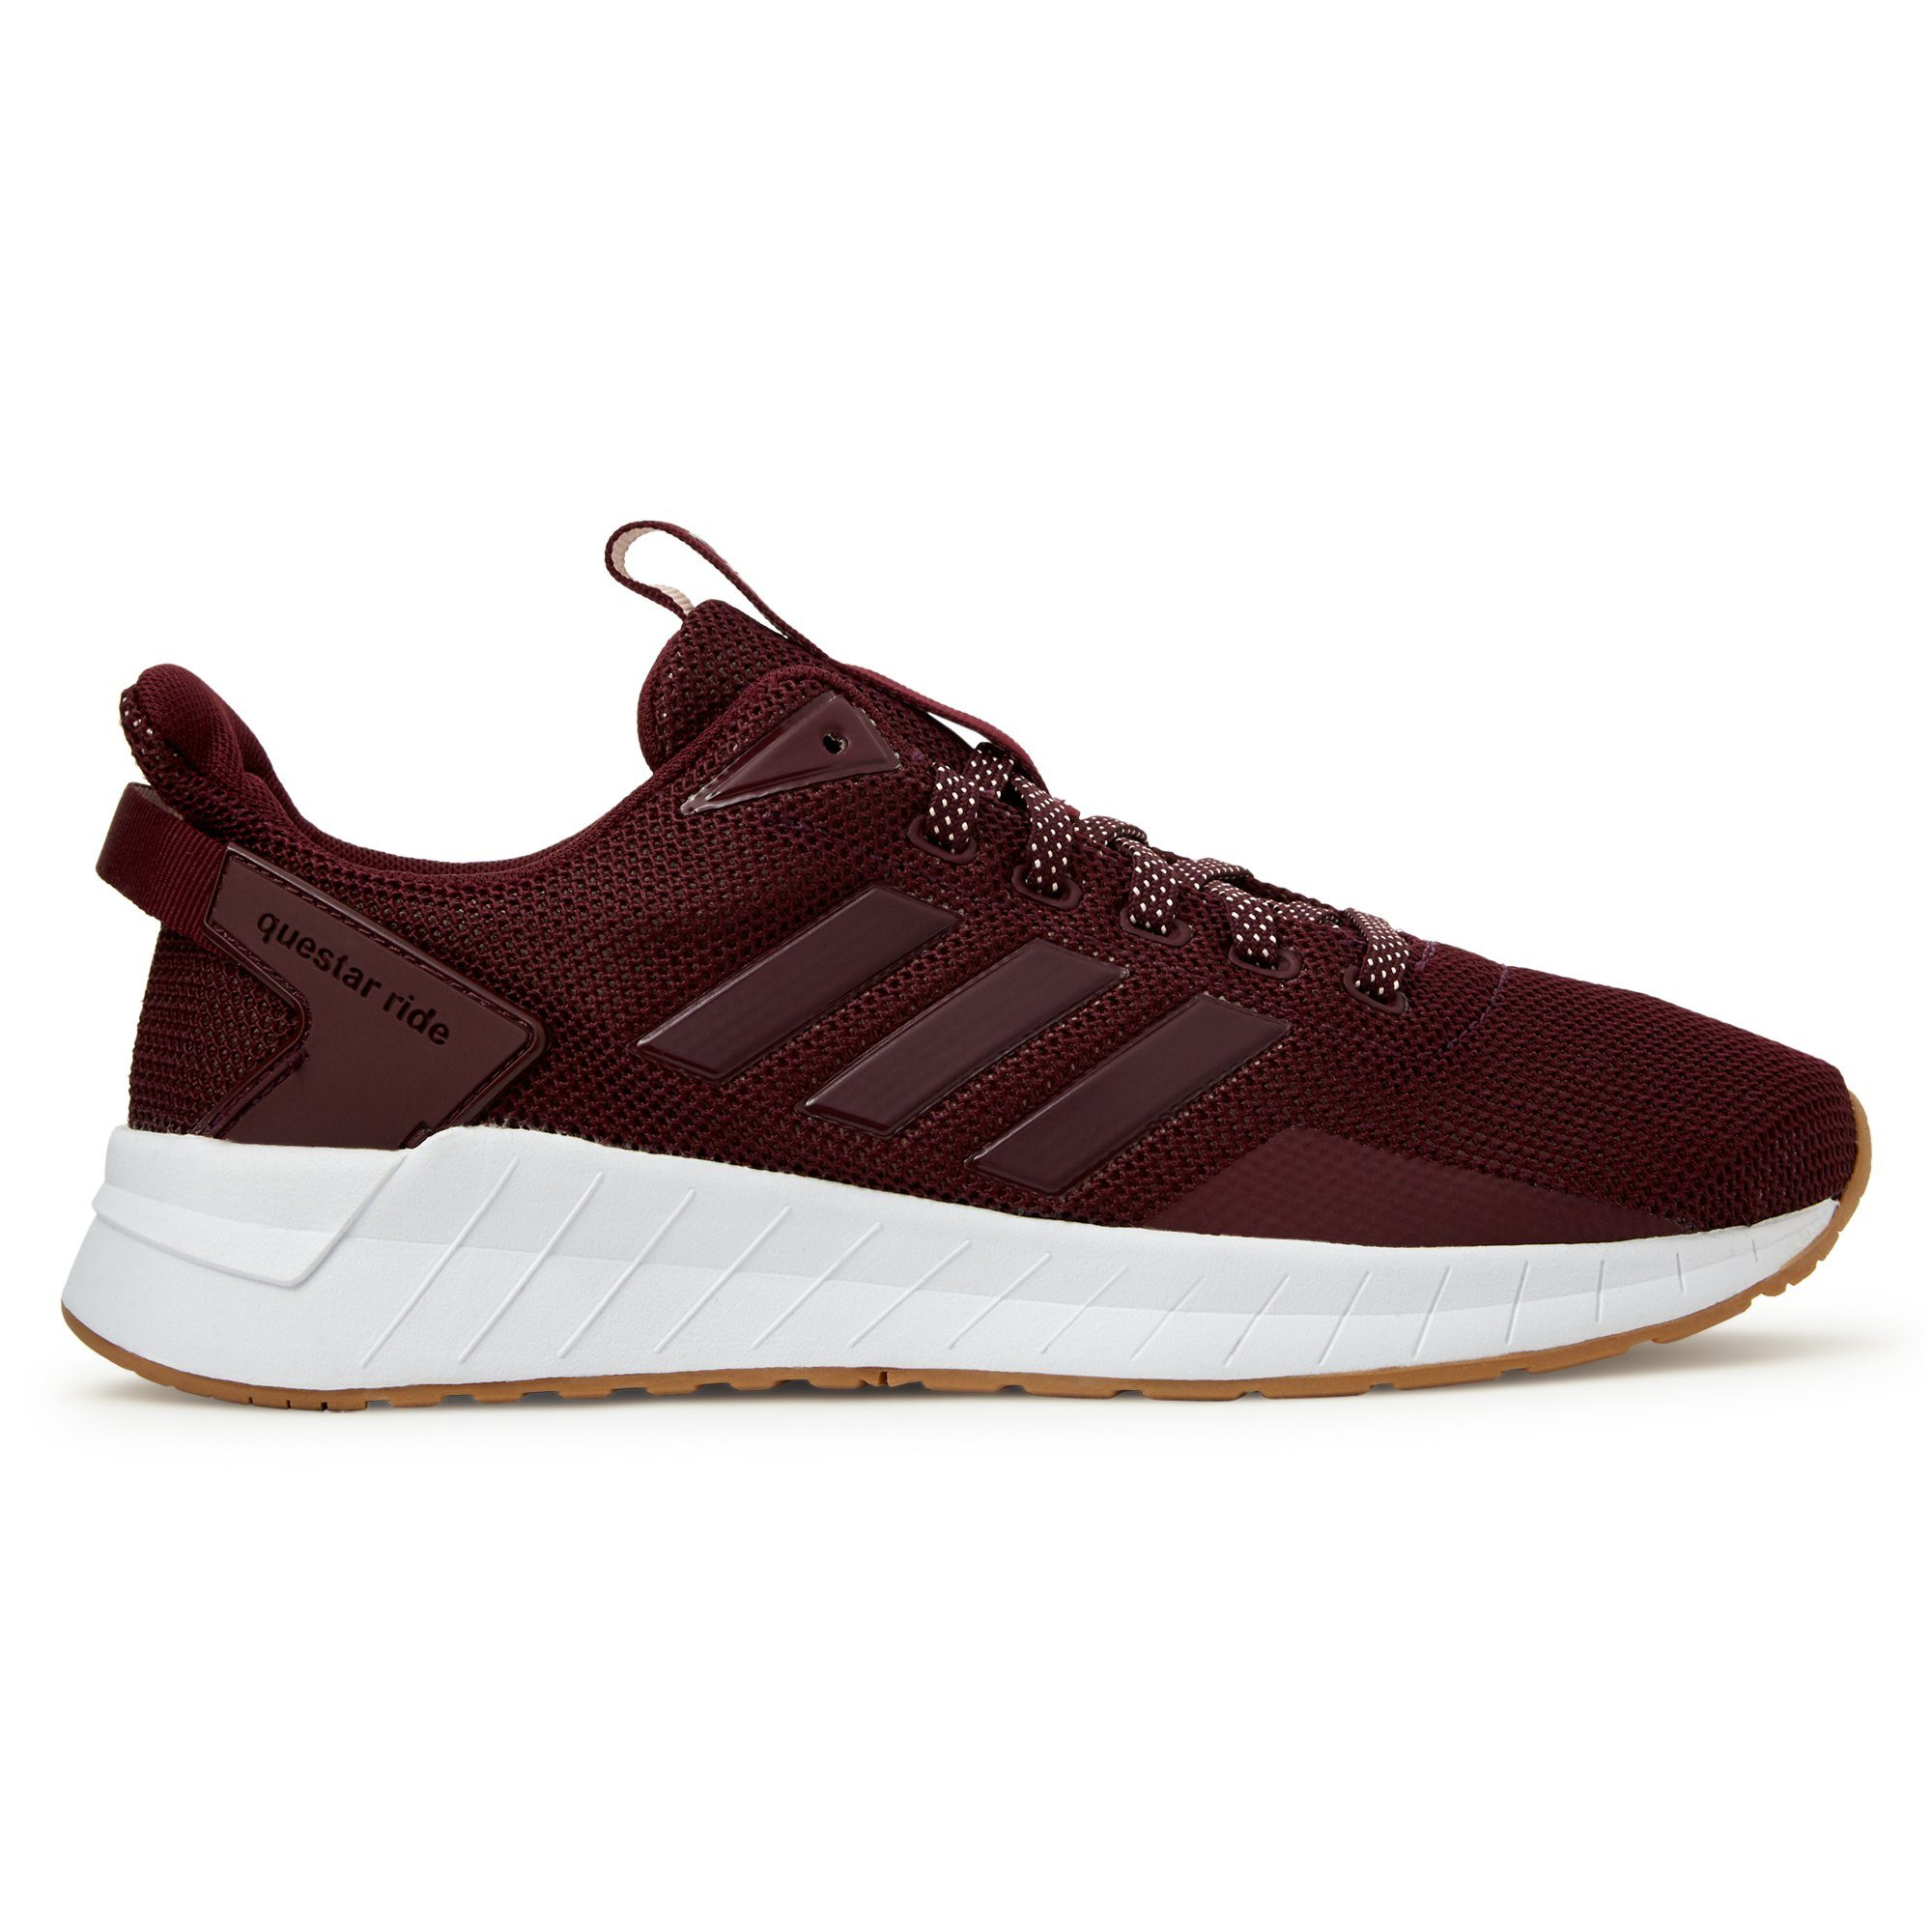 Adidas Women's Questar Ride Shoes - Maroon/Maroon/Gum4 Footwear Adidas